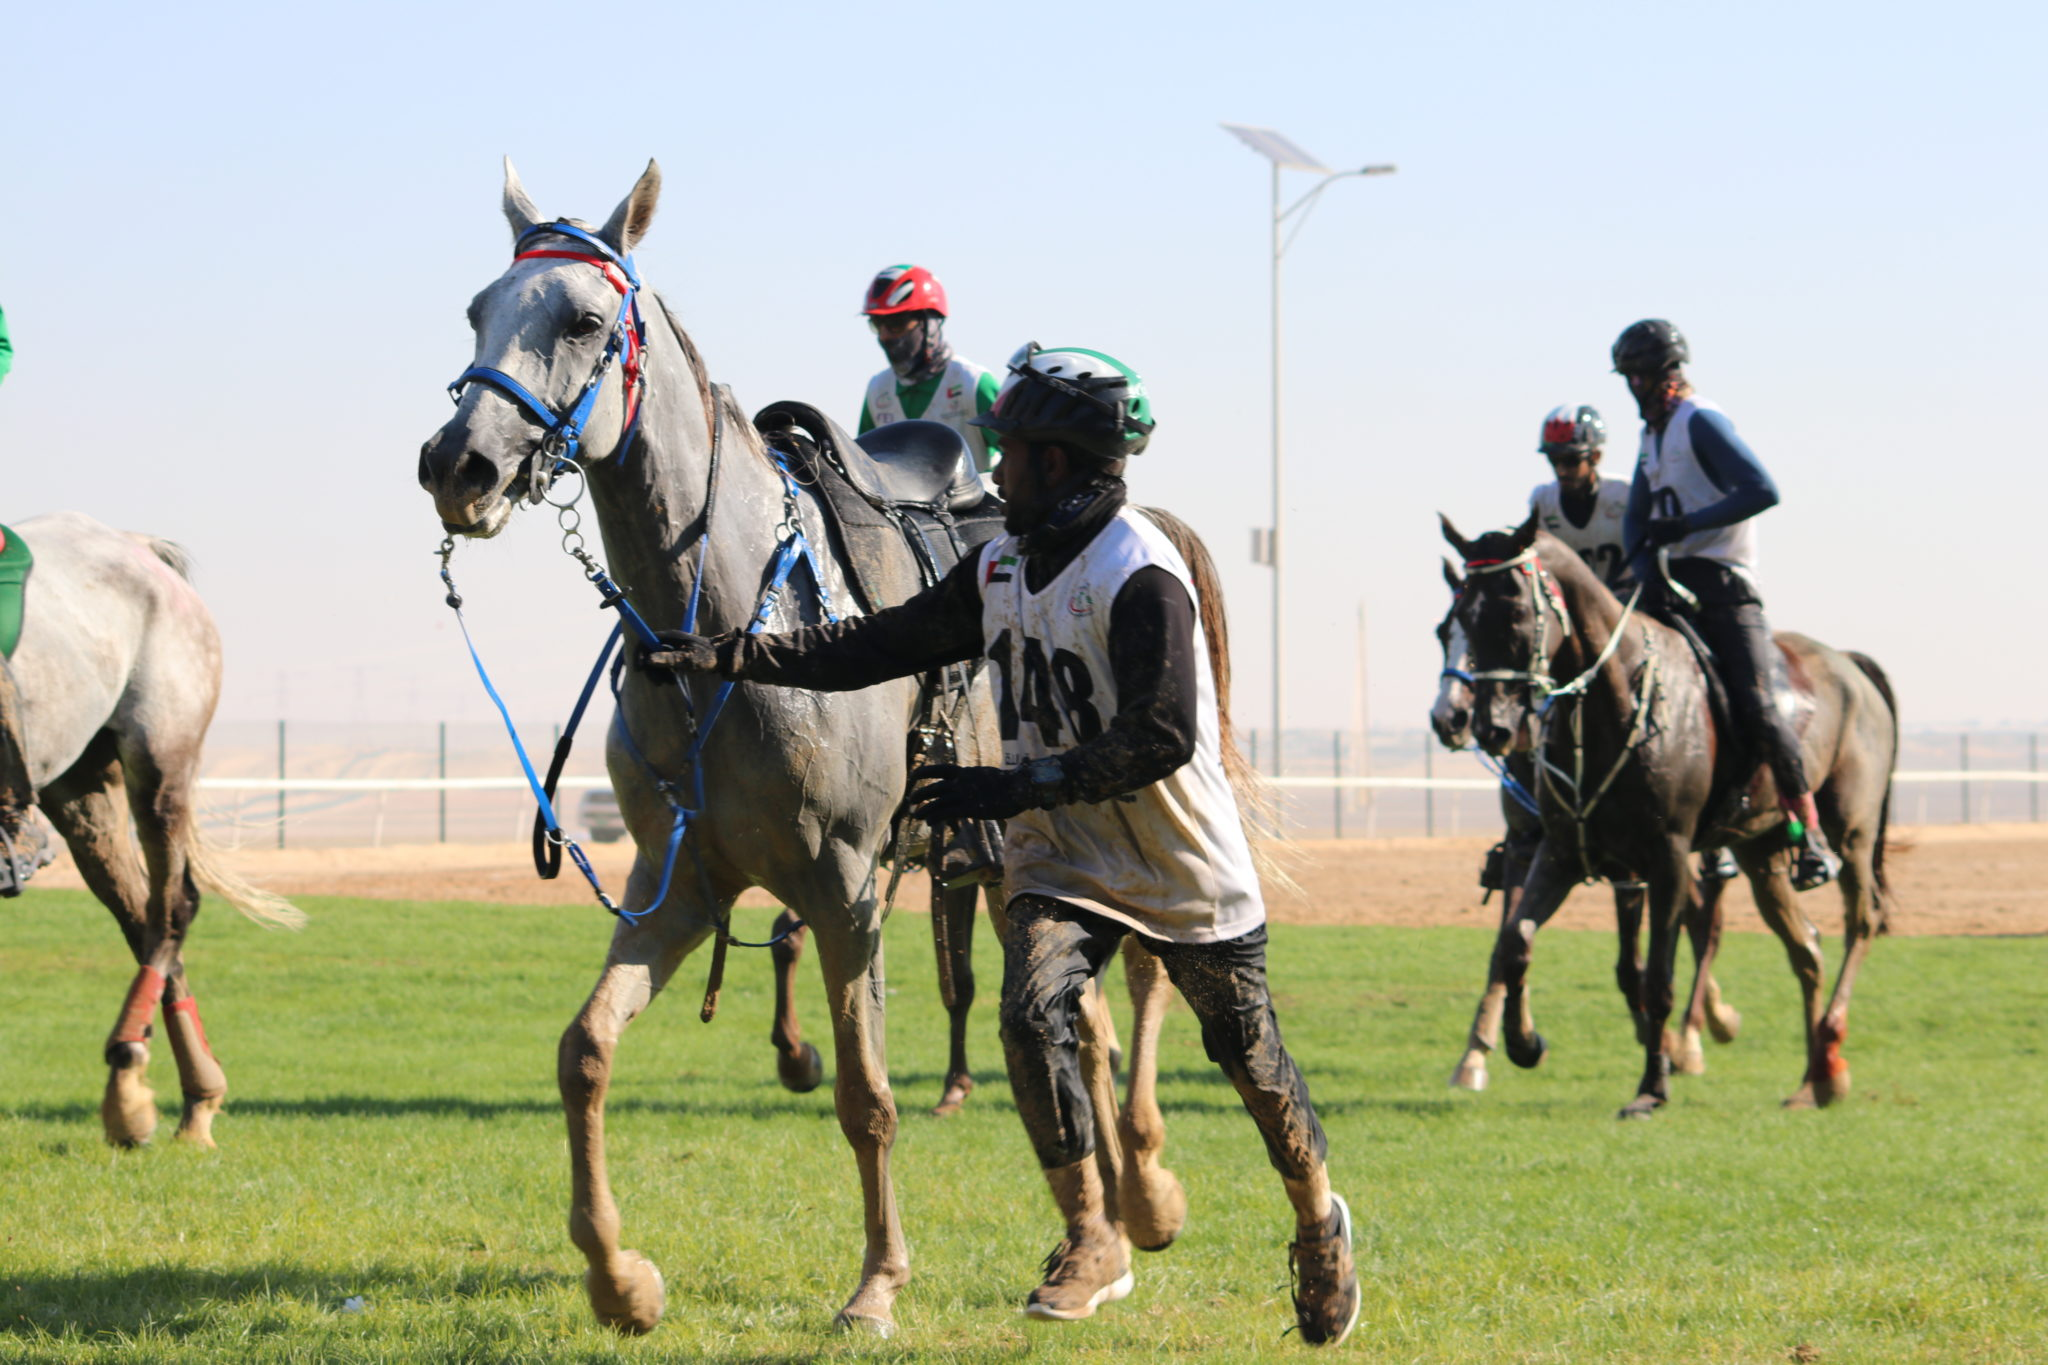 Endurance World Al Reef Cup. Looking after the horse.